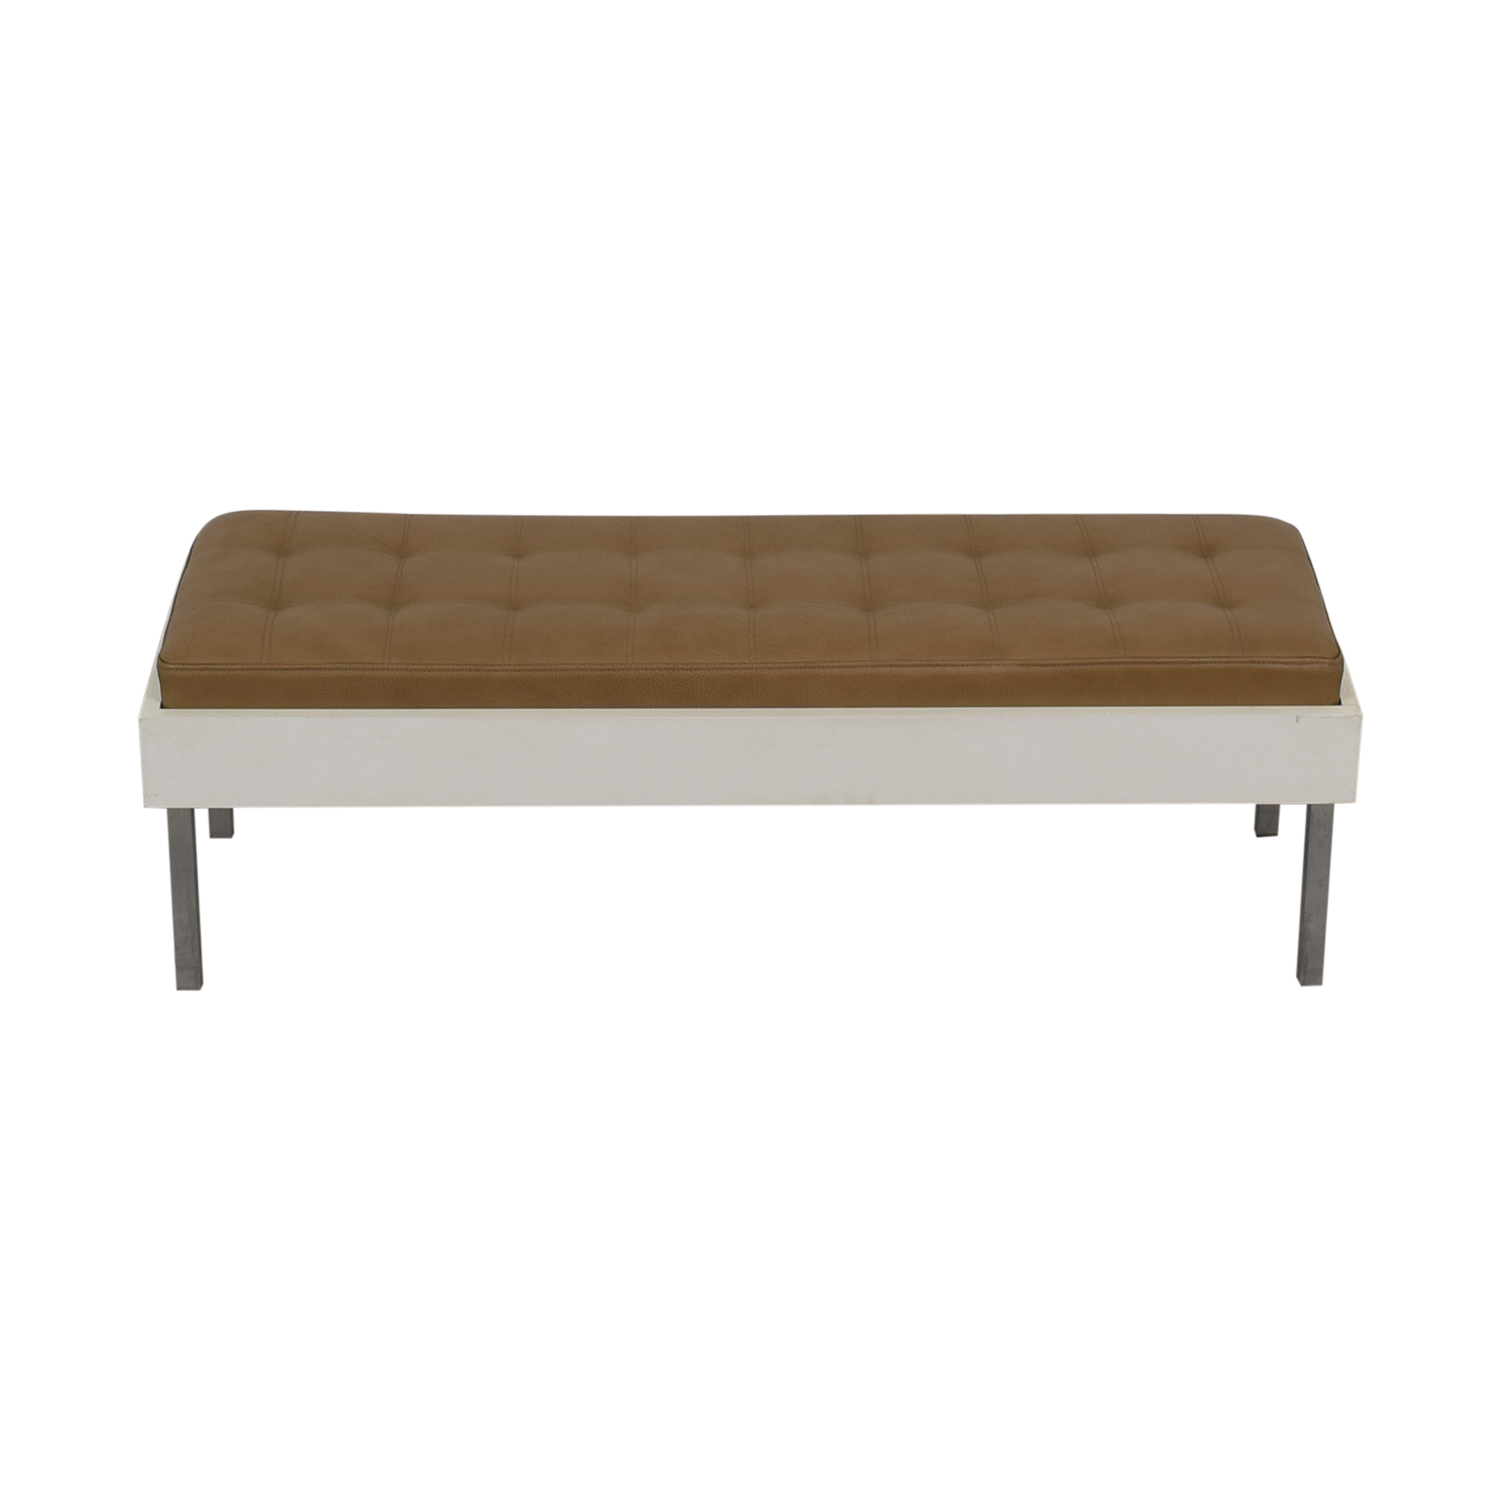 buy Furniture Masters Wood and Leather Tufted Bench Furniture Masters Ottomans